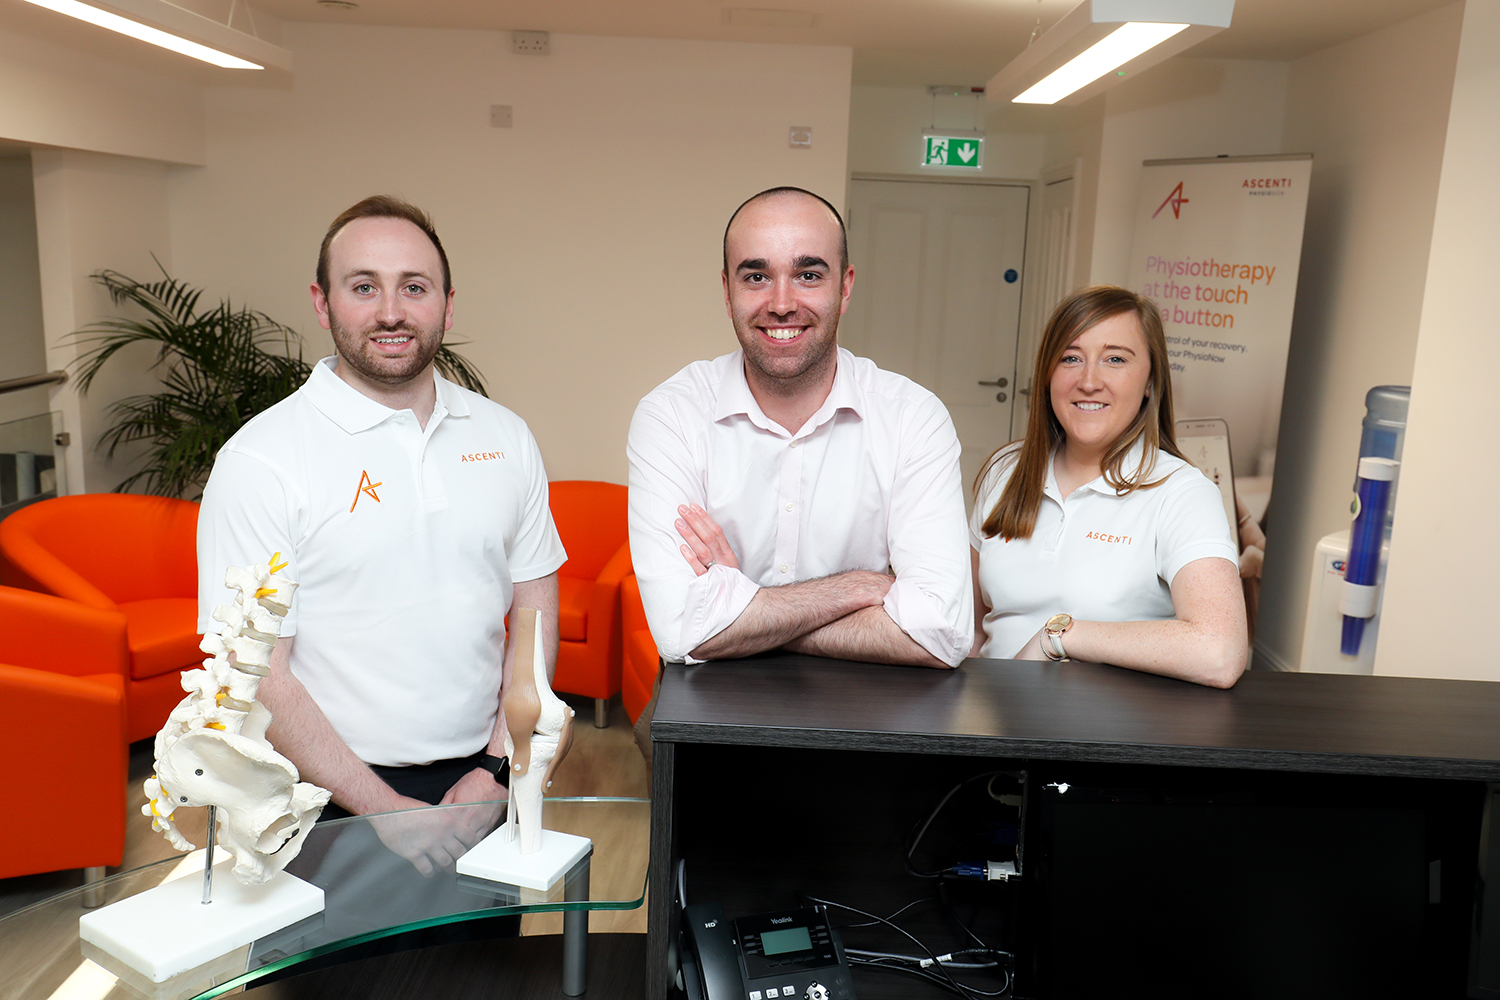 Associate Director Ryan Allen and our physiotherapists